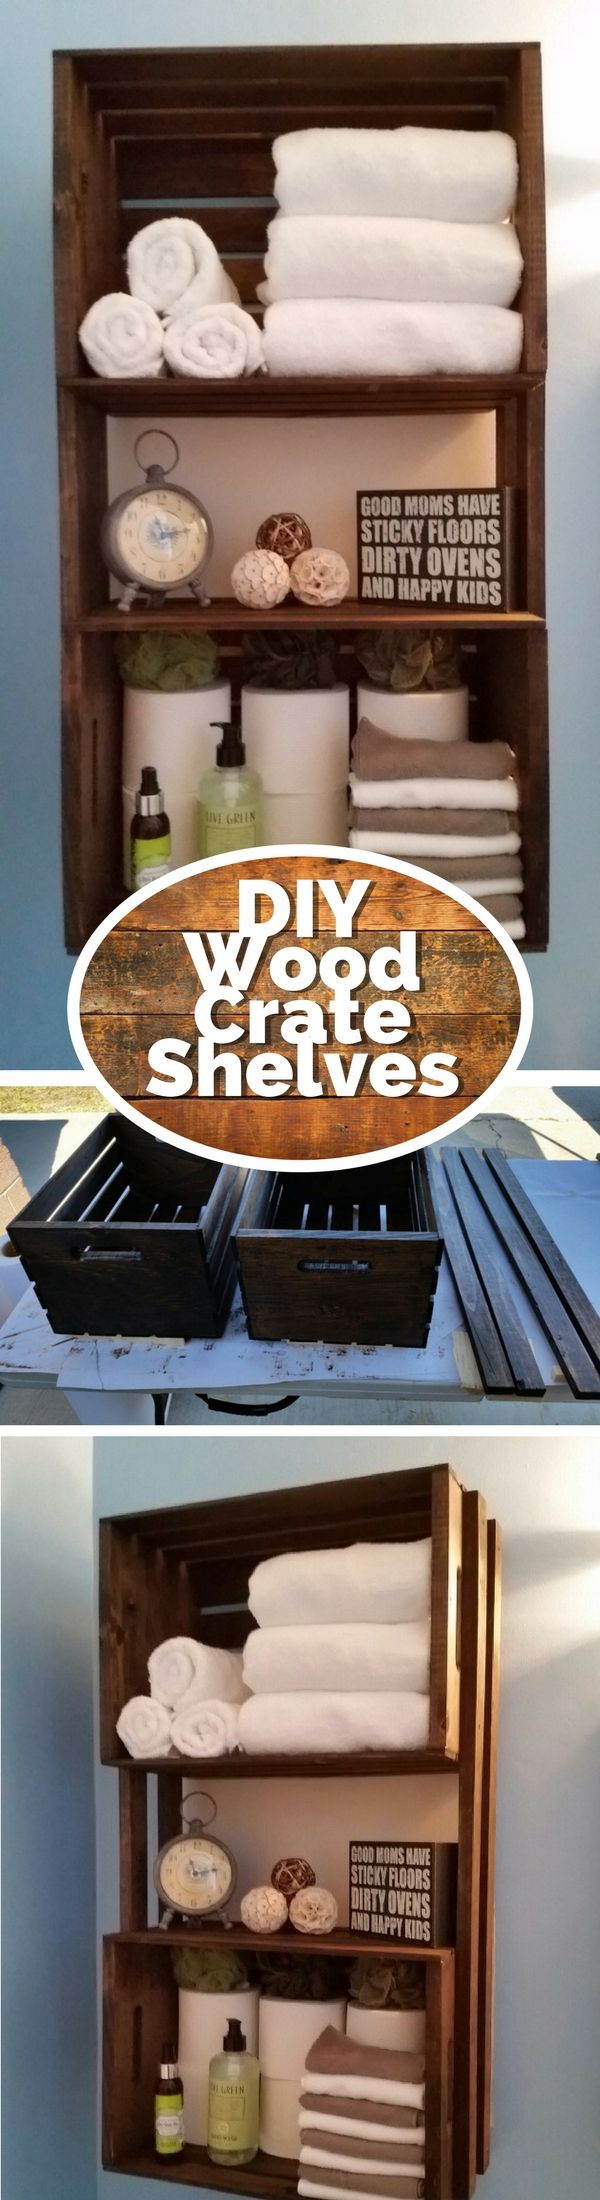 Check out how to build a DIY rustic towel rack from wood crates @istandarddesign